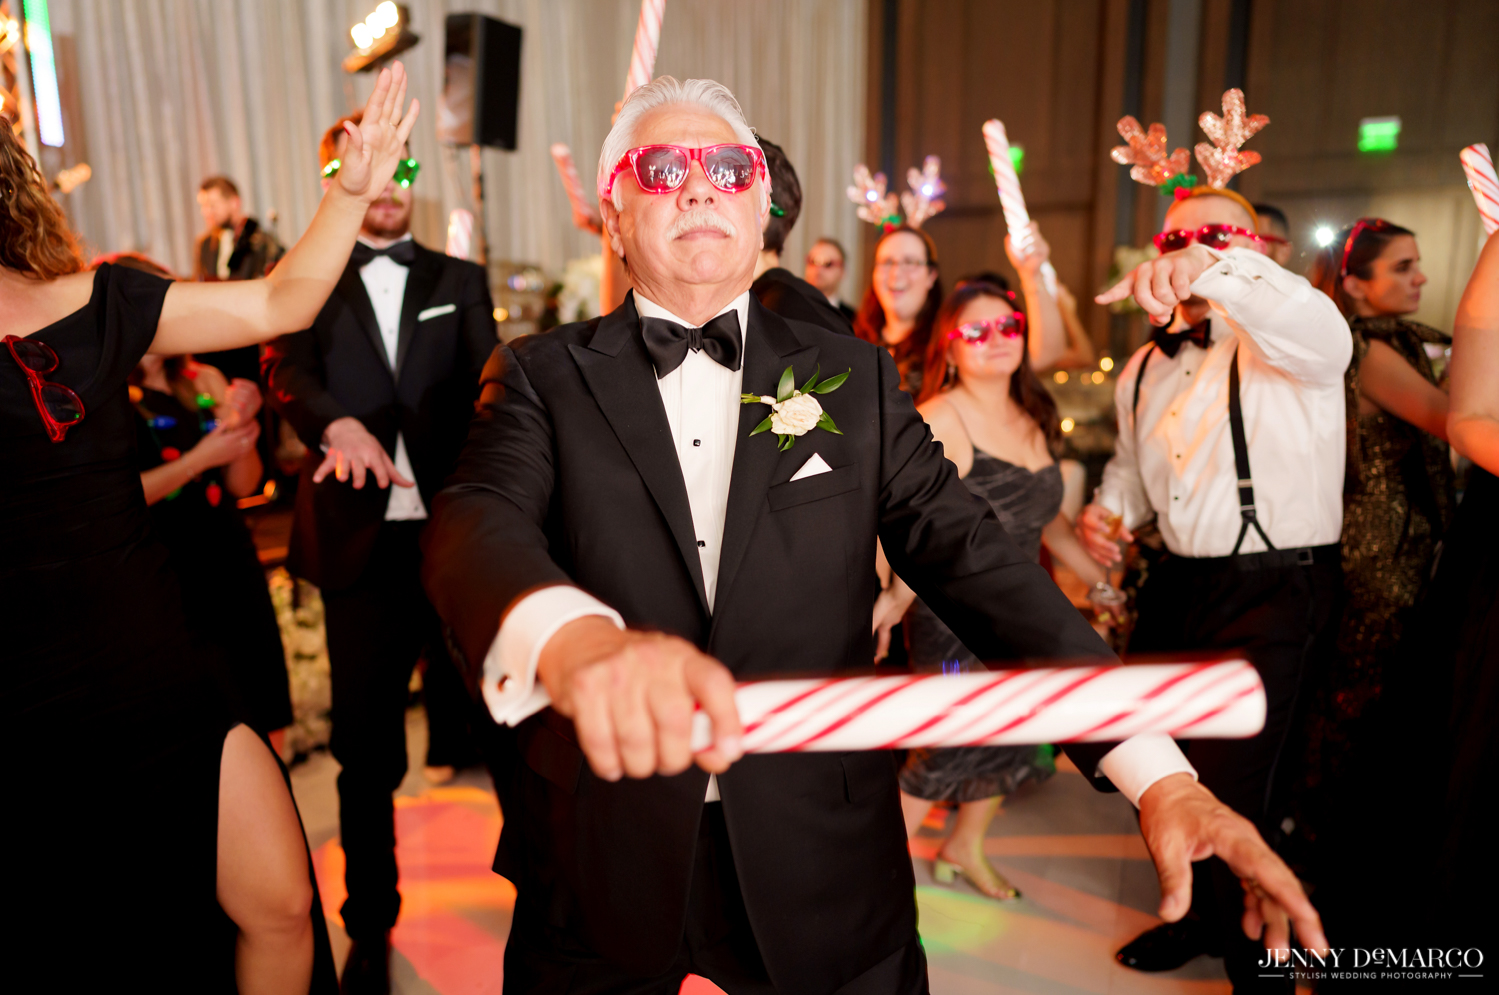 father of the bride dancing at the wedding reception with a candy cane stick and red light sunglasses